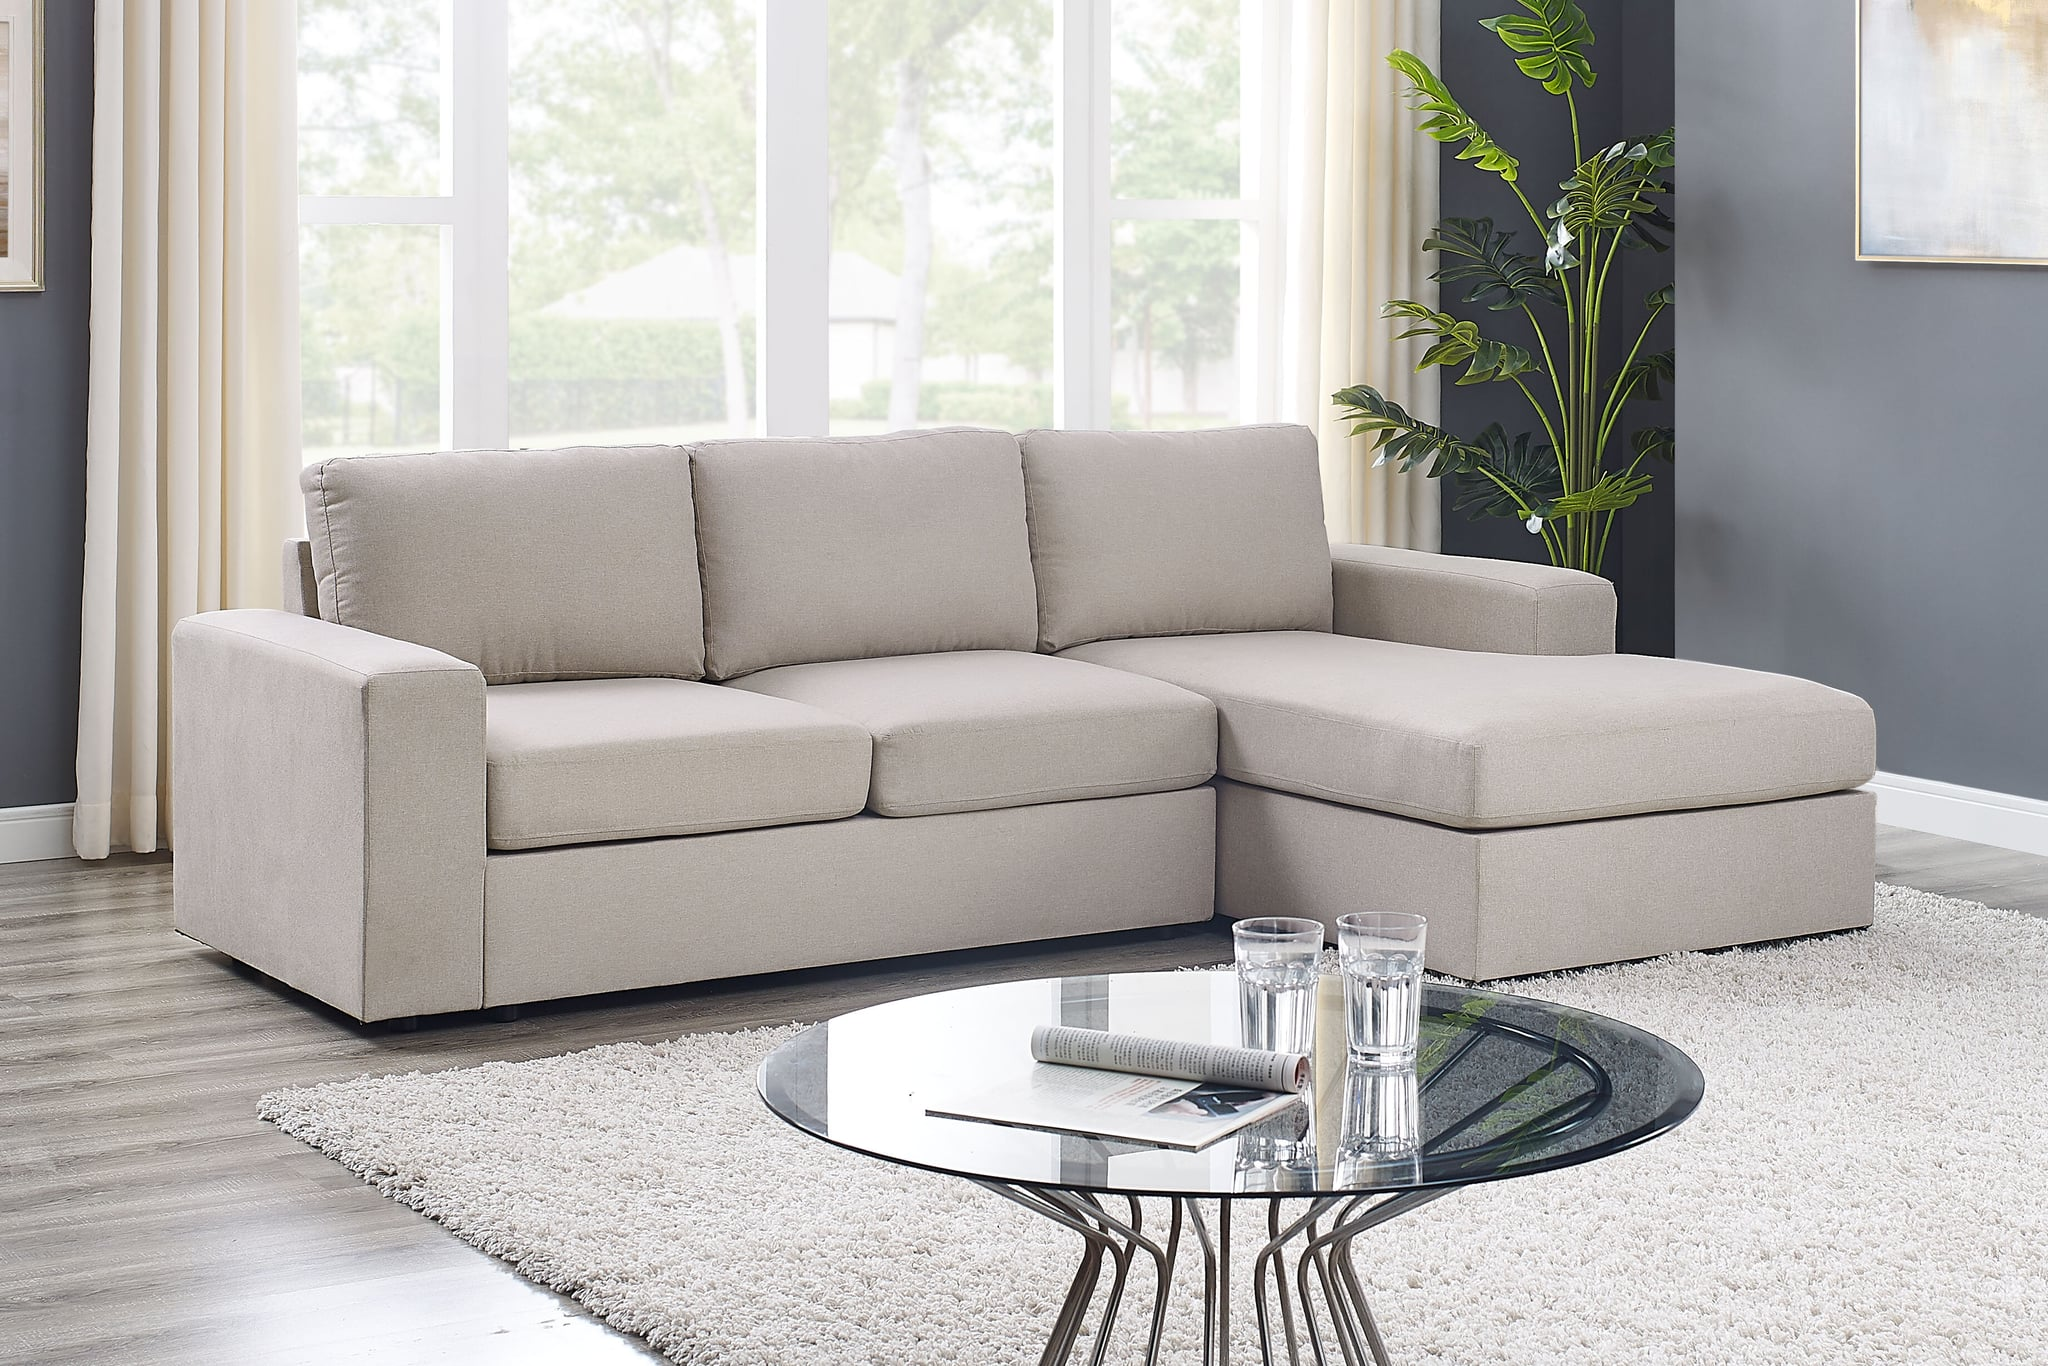 Best And Most Comfortable Sectional Sofas Popsugar Home,Small Living Room Furniture Arrangement Ideas